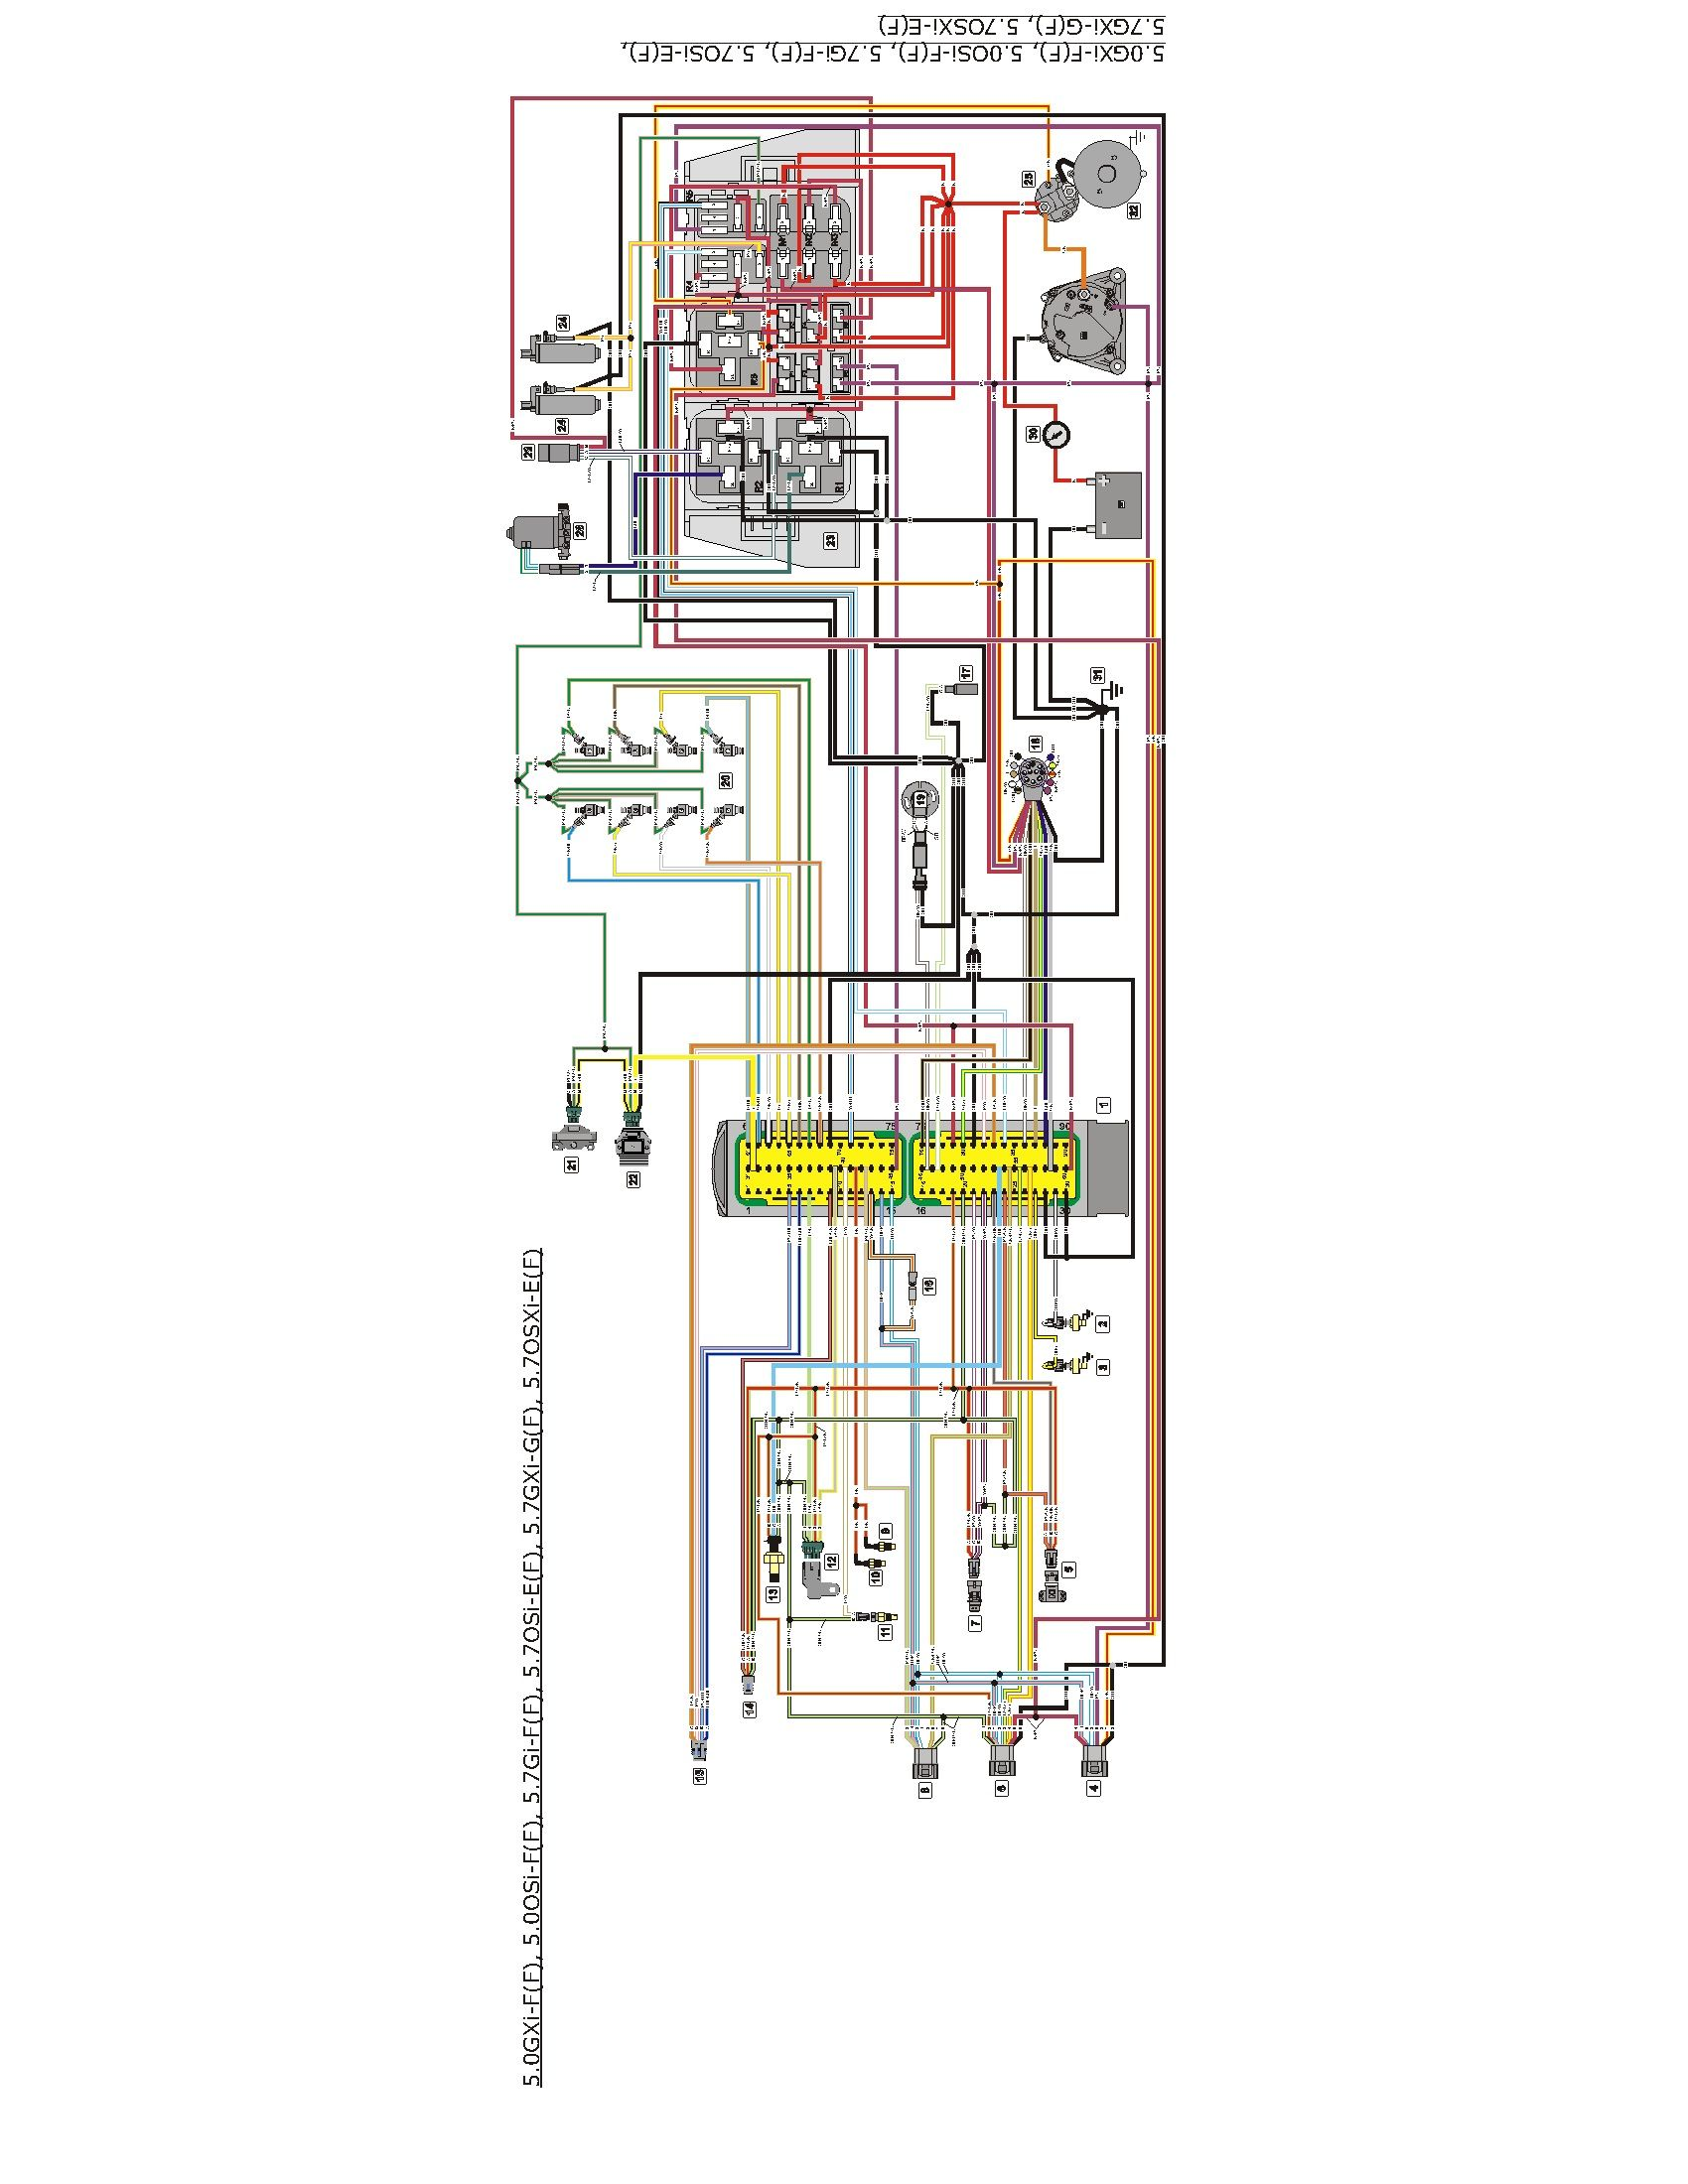 Volvo Penta 5.7 Engine Wiring Diagram